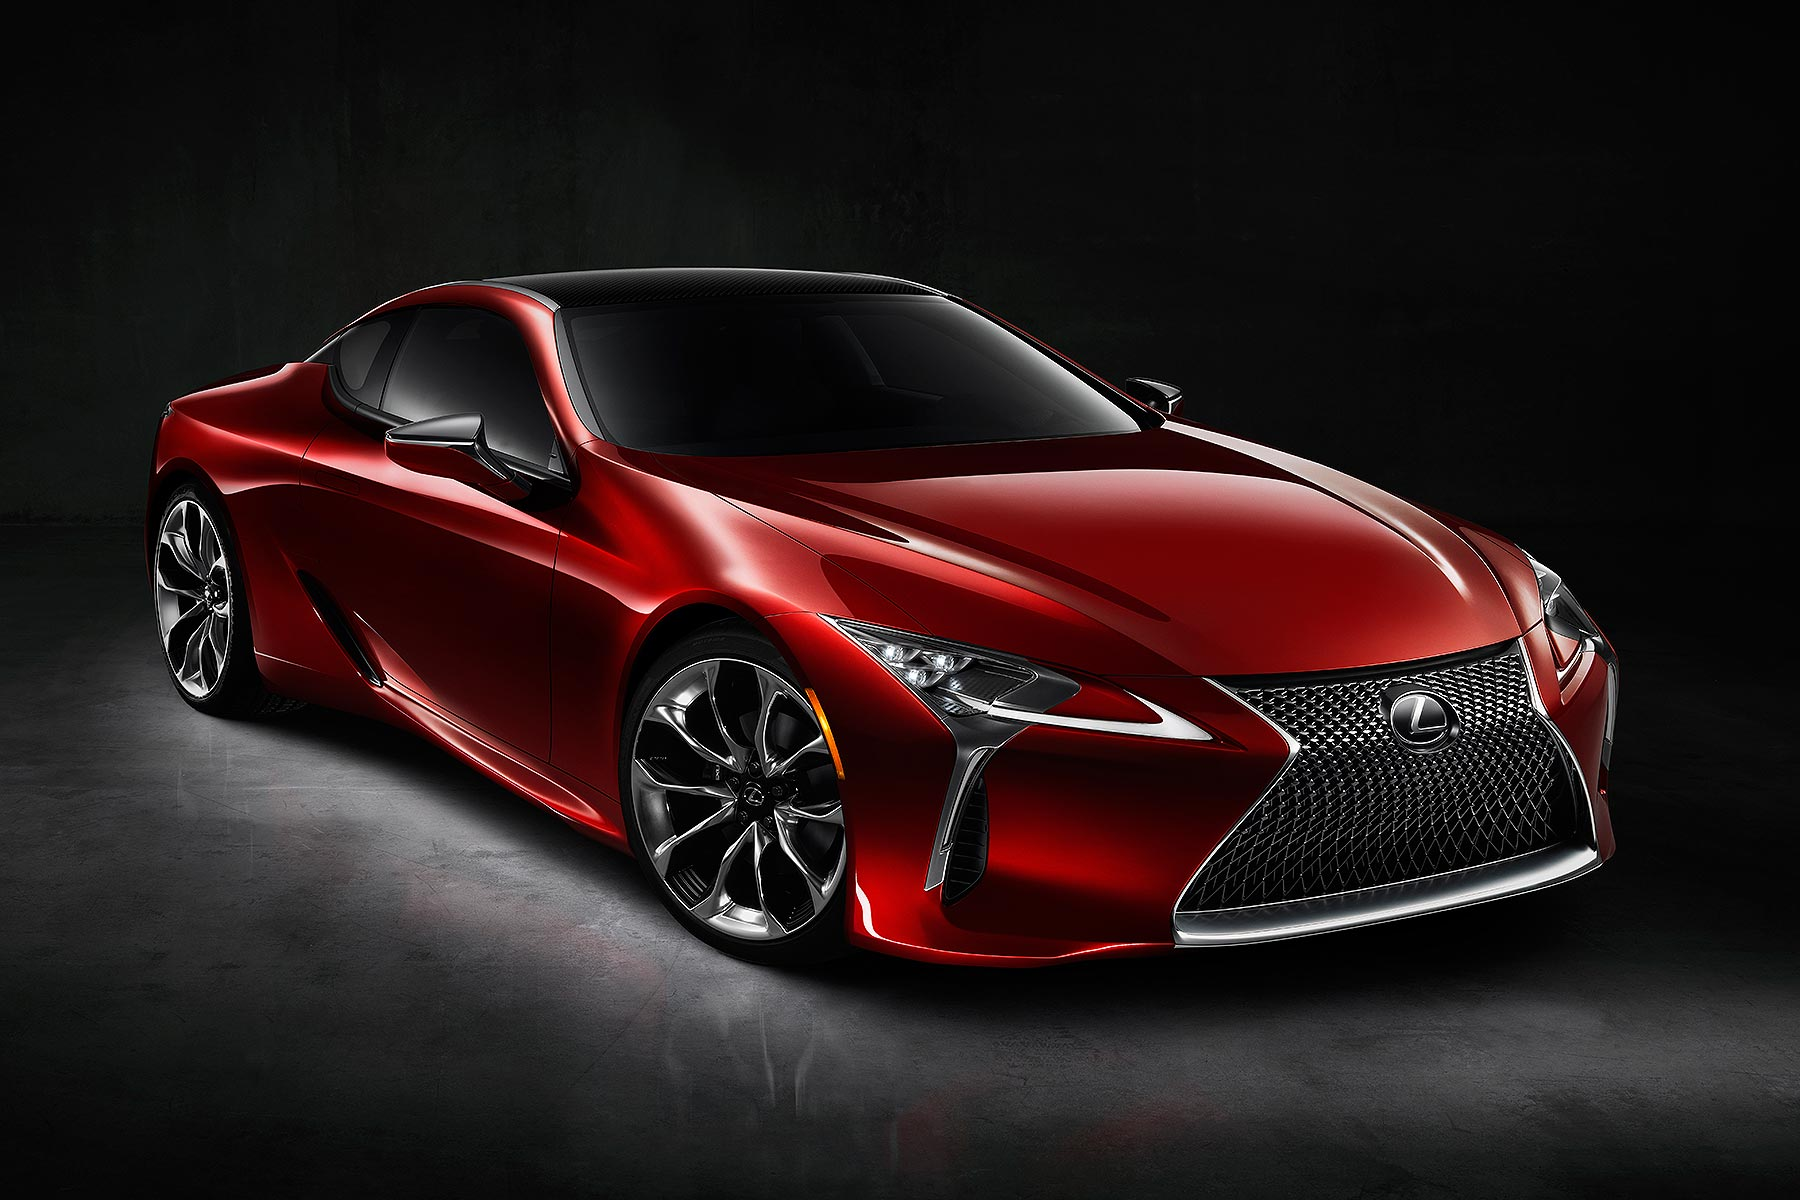 detroit 2016 lexus lc 500 luxury coupe revealed at naias motoring research. Black Bedroom Furniture Sets. Home Design Ideas